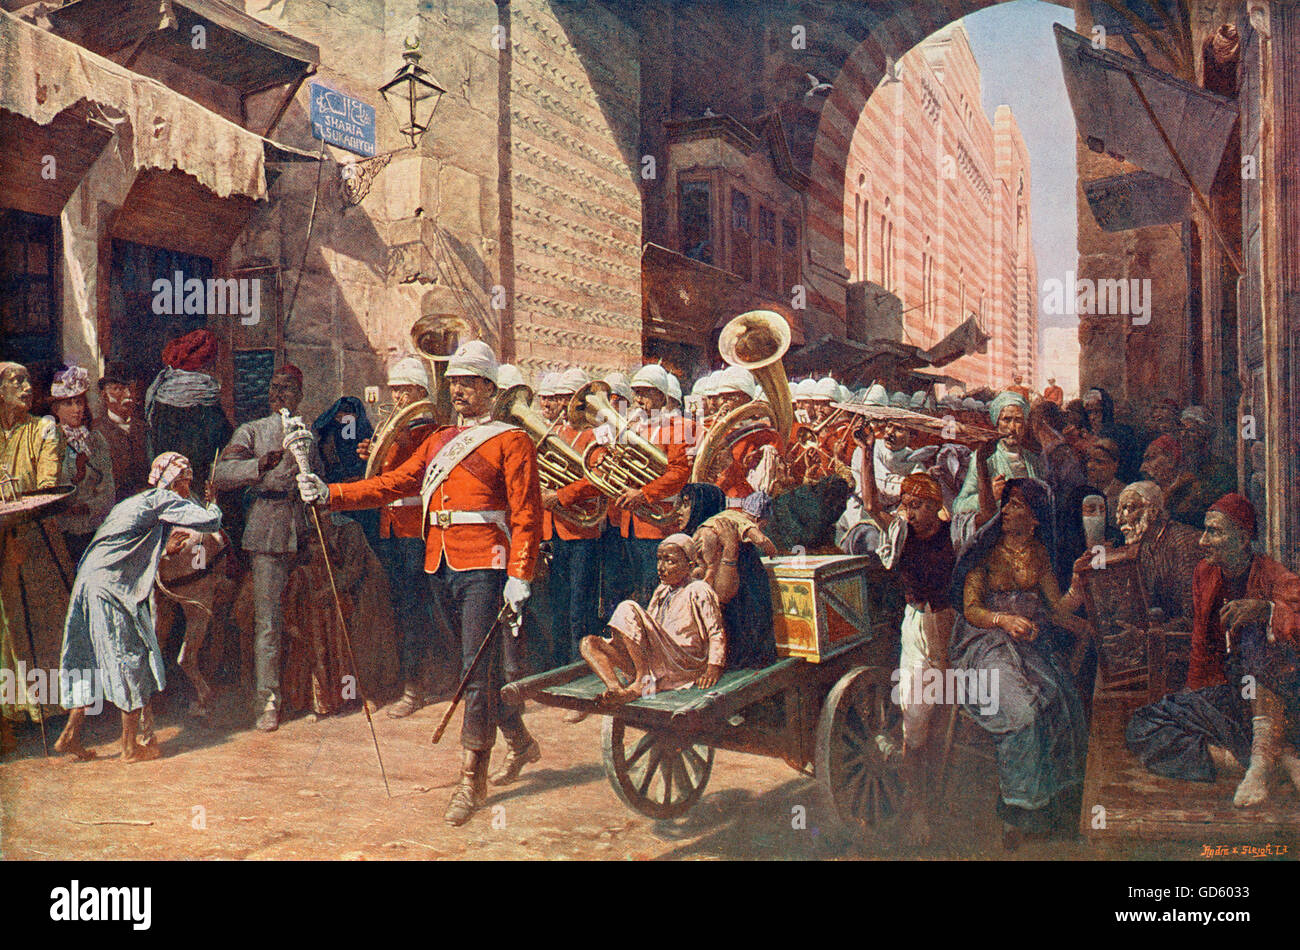 A friendly power in Egypt, after the  painting by W.C. Horsley. The 41st Welsh regiment  marching through the Metwali - Stock Image